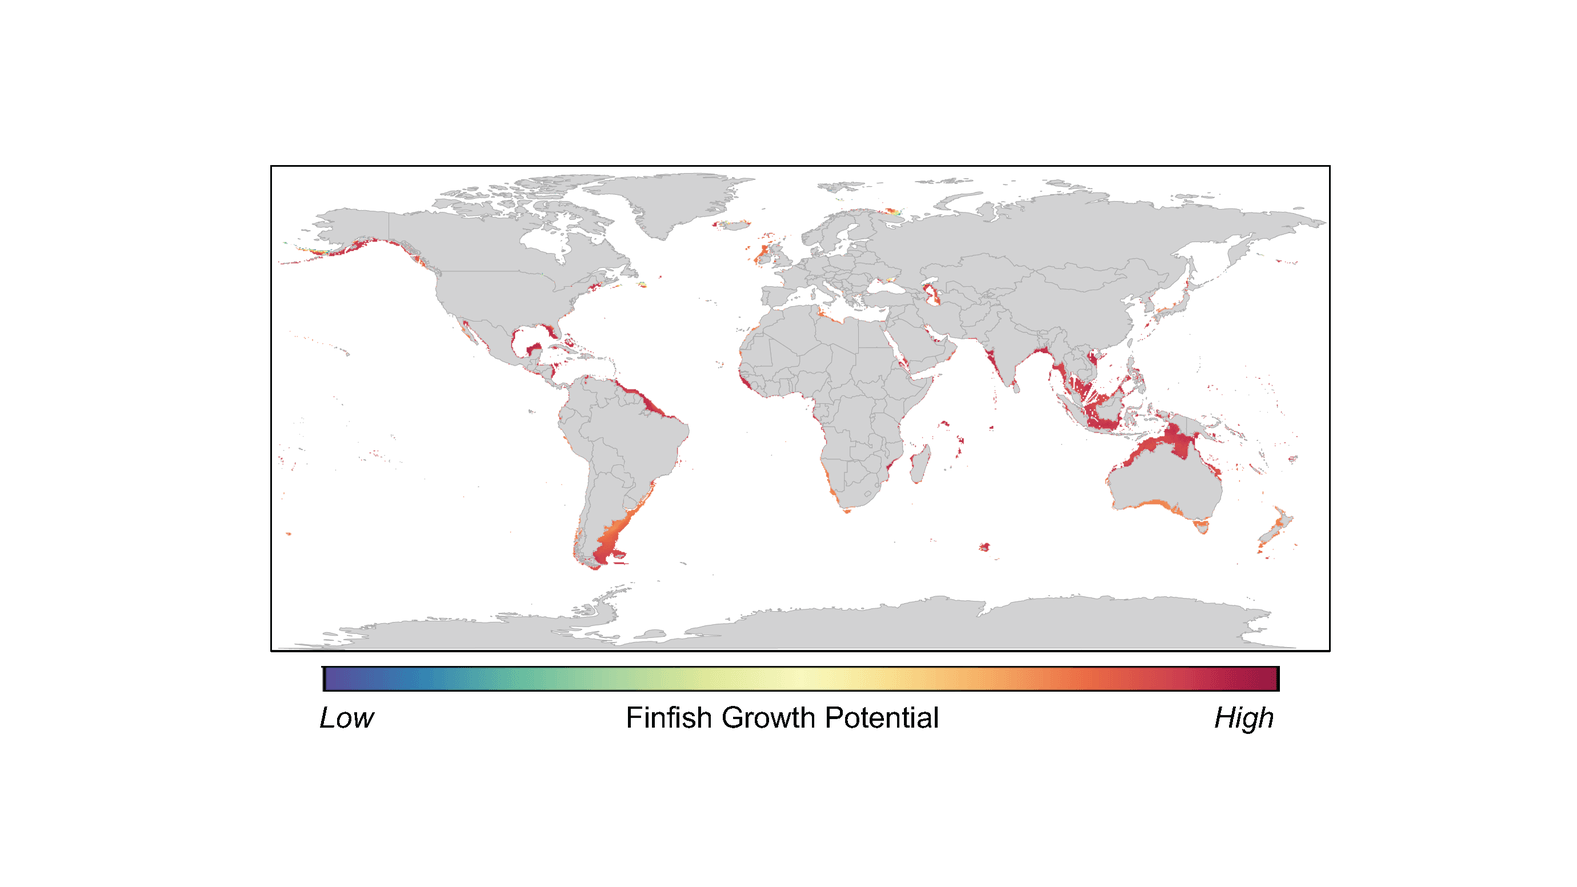 Global hotspots for finfish aquaculture. Image credit: Adapted from Gentry et al., Nature Ecology & Evolution 1, 1317–1324 (2017) [Licensed under CC BY 4.0]